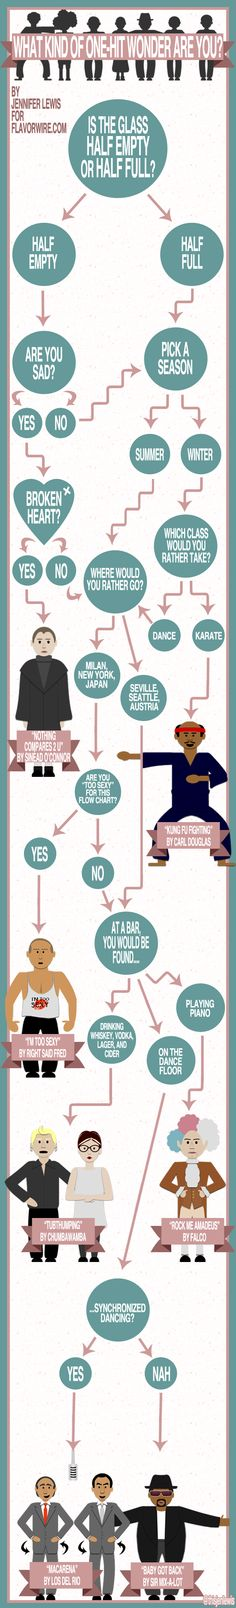 Exclusive Infographic: Which One-Hit Wonder Are You?